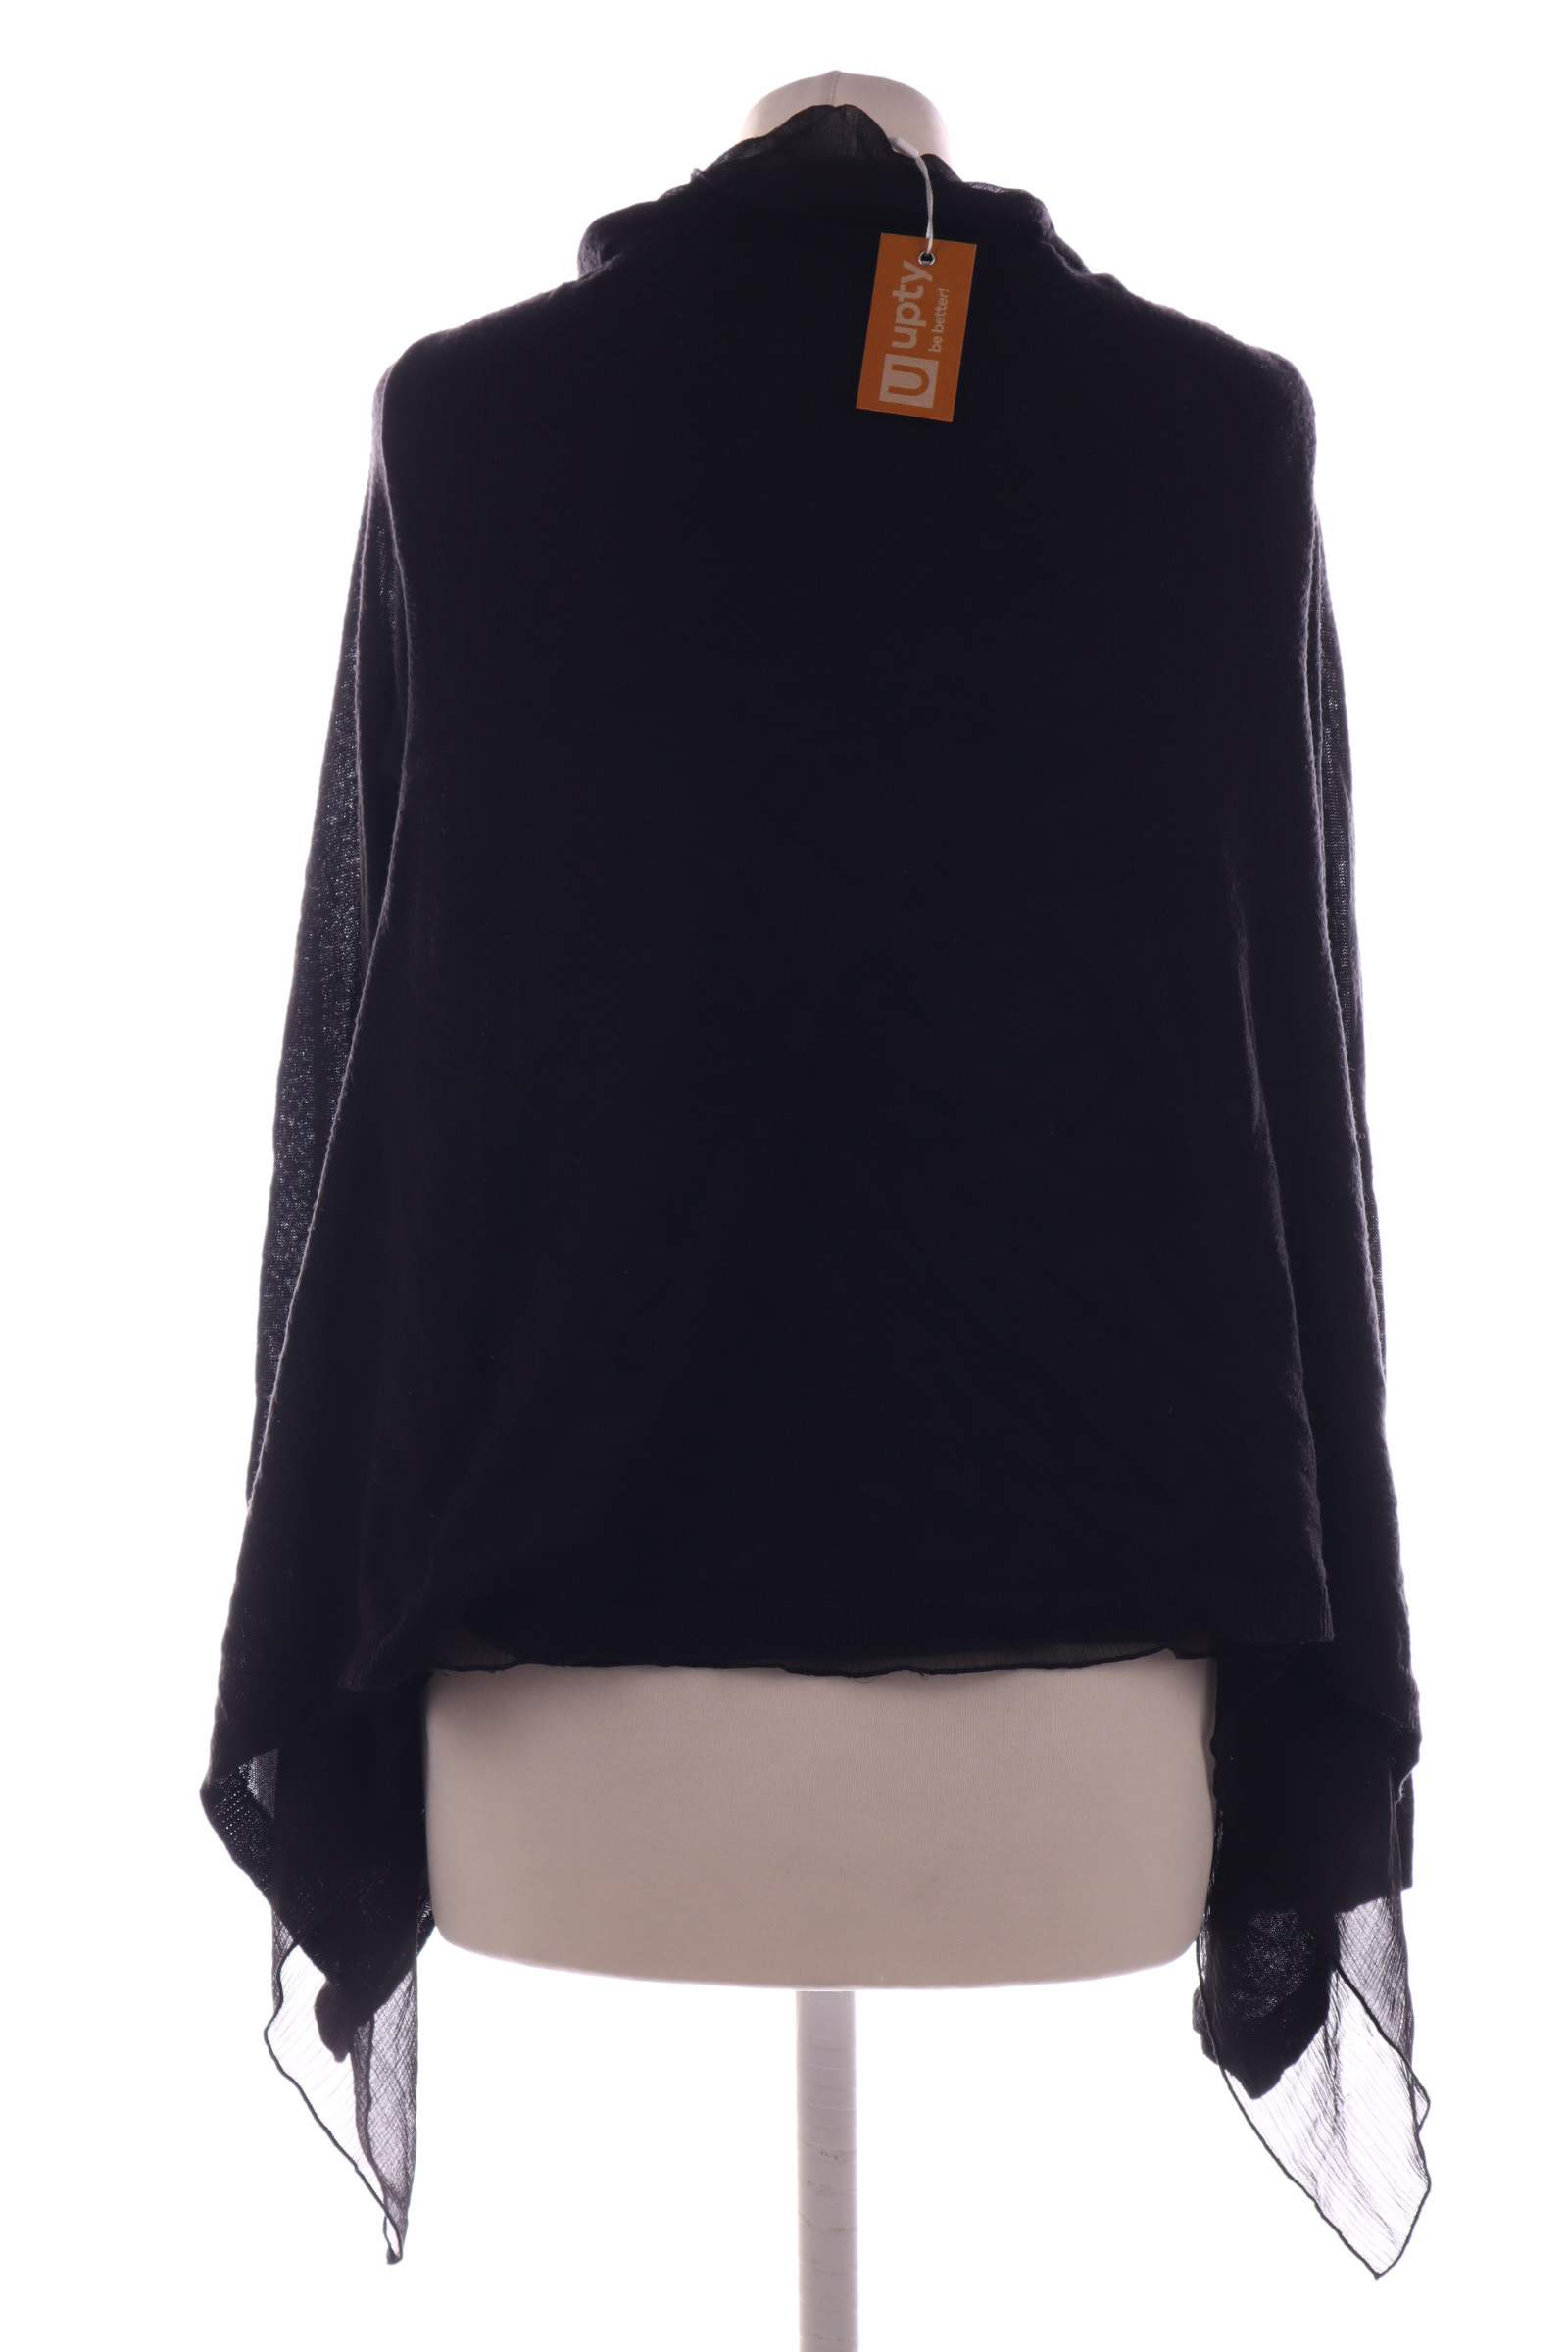 Zara Black Sweater - upty.store